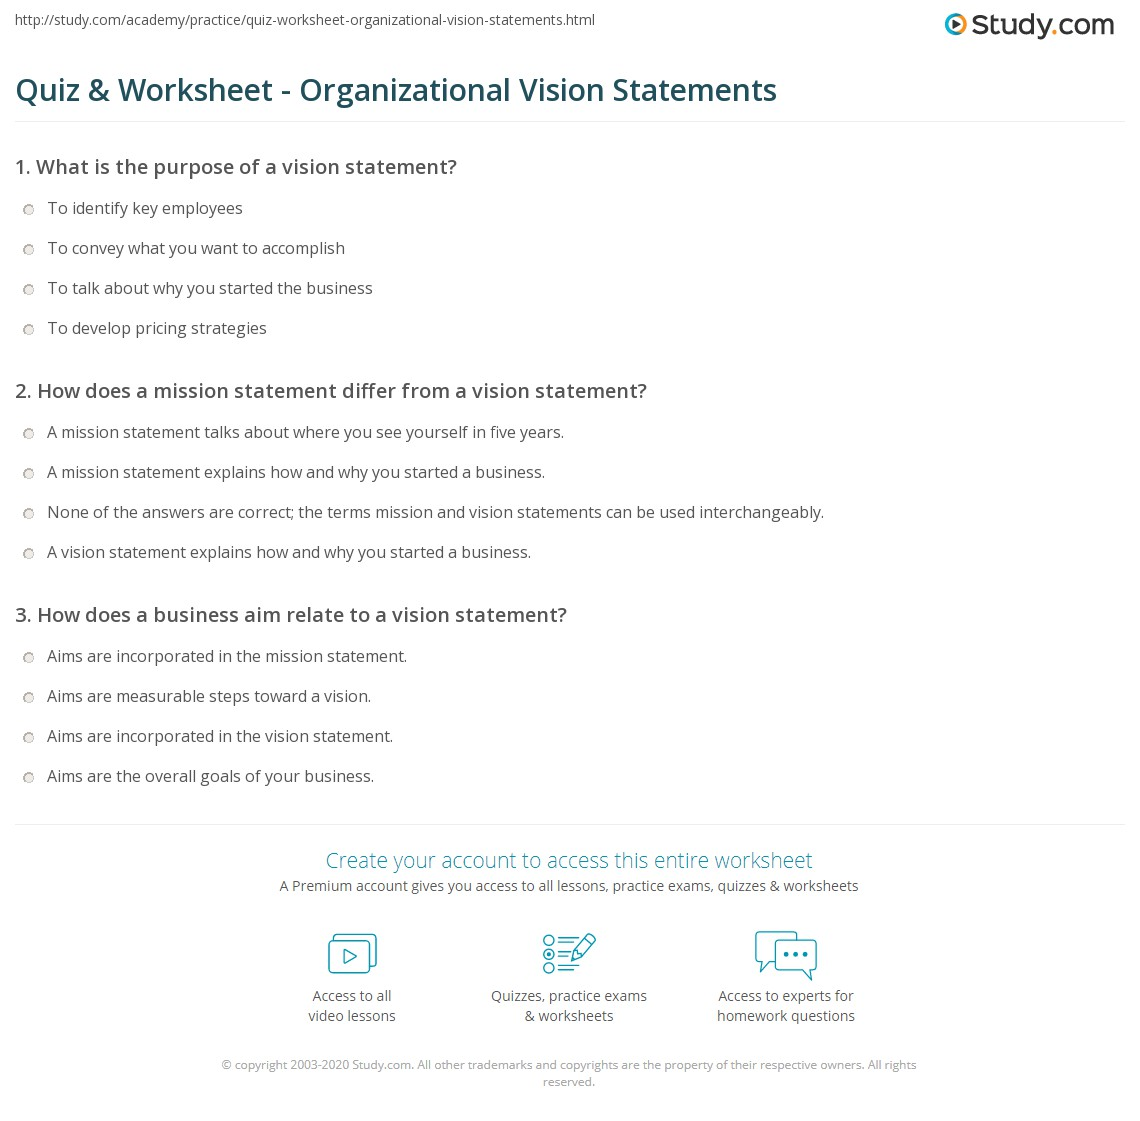 quiz & worksheet - organizational vision statements | study